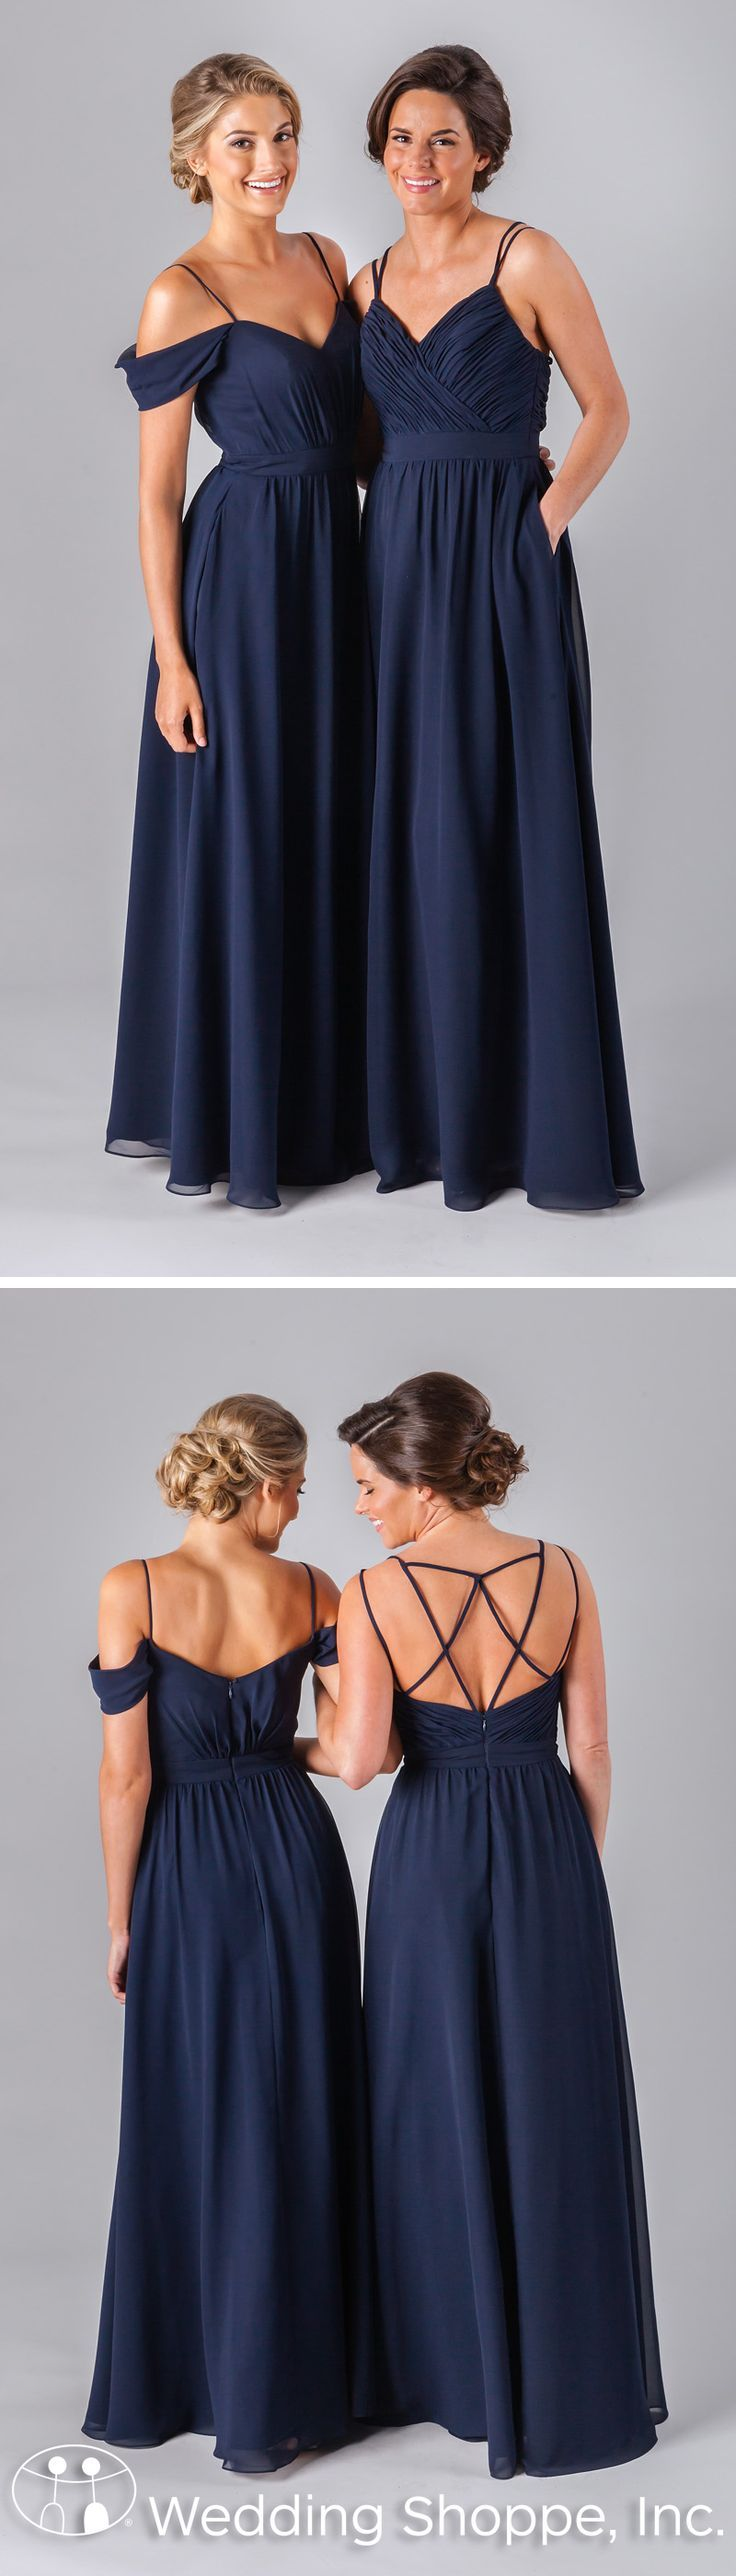 Long mismatched navy bridesmaid dresses with stunning details.